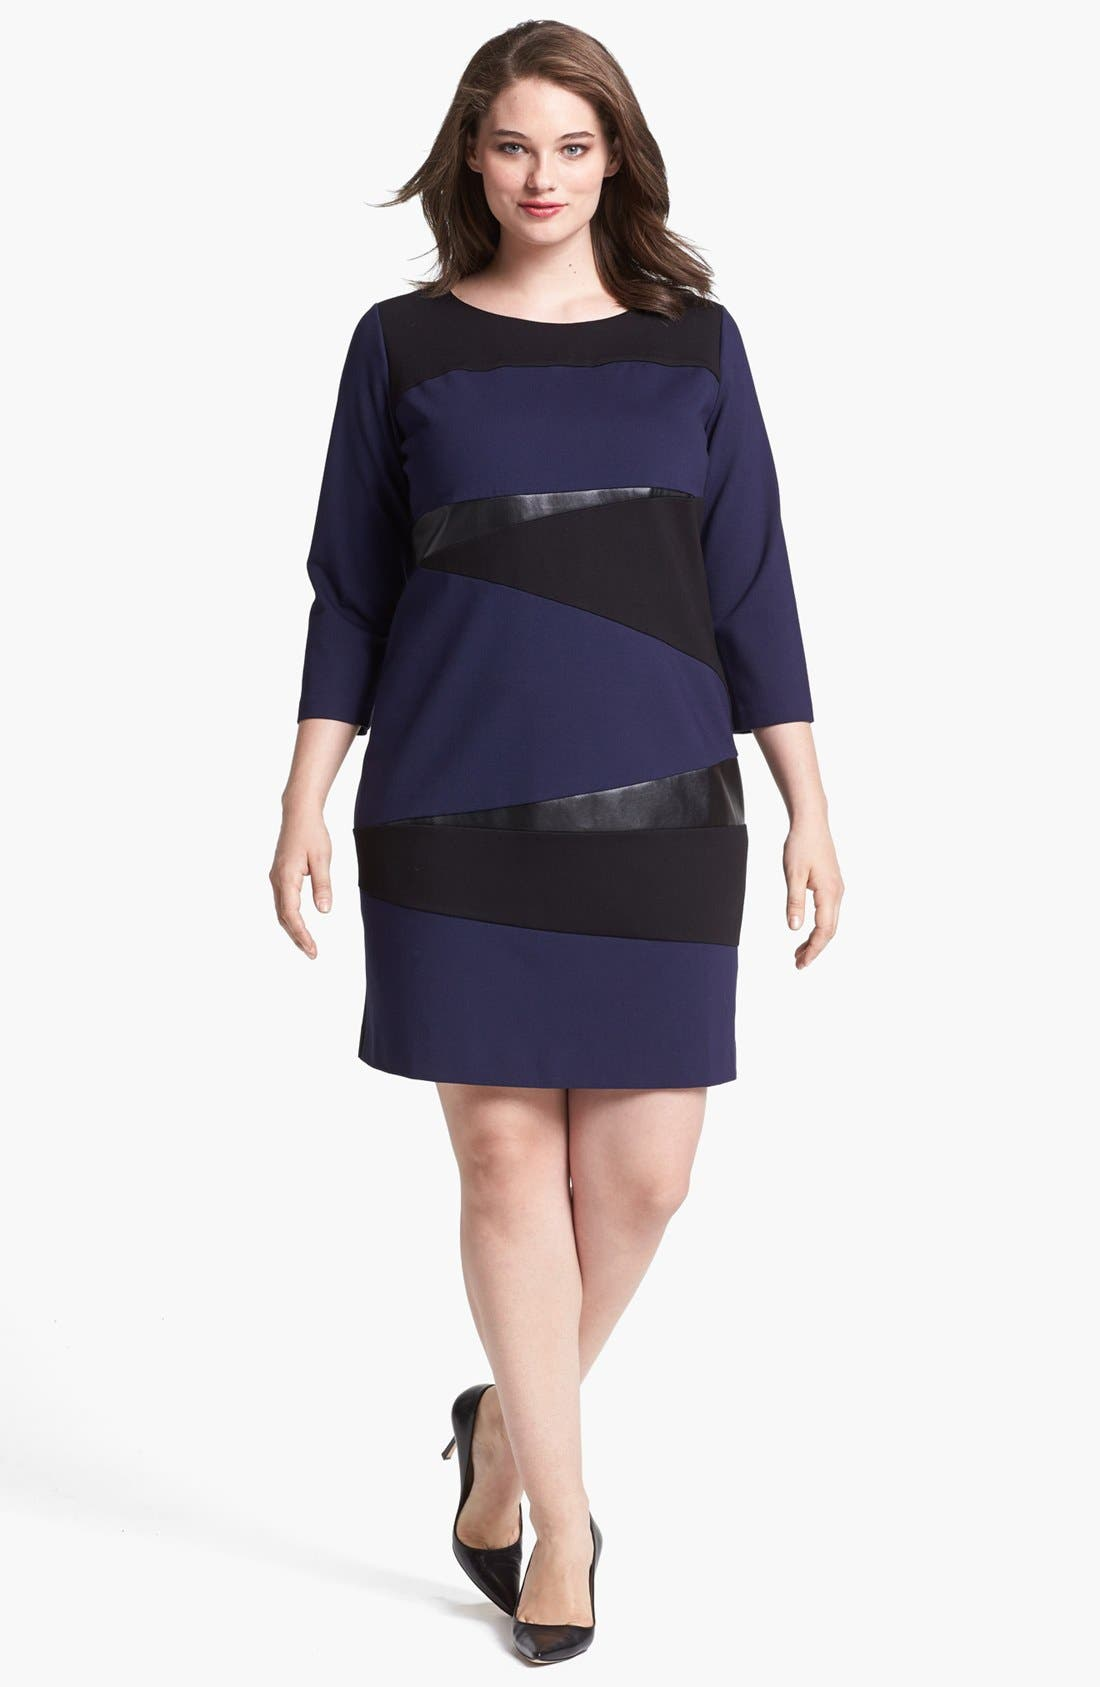 Alternate Image 1 Selected - DKNYC Faux Leather Trim Shift Dress (Plus Size)